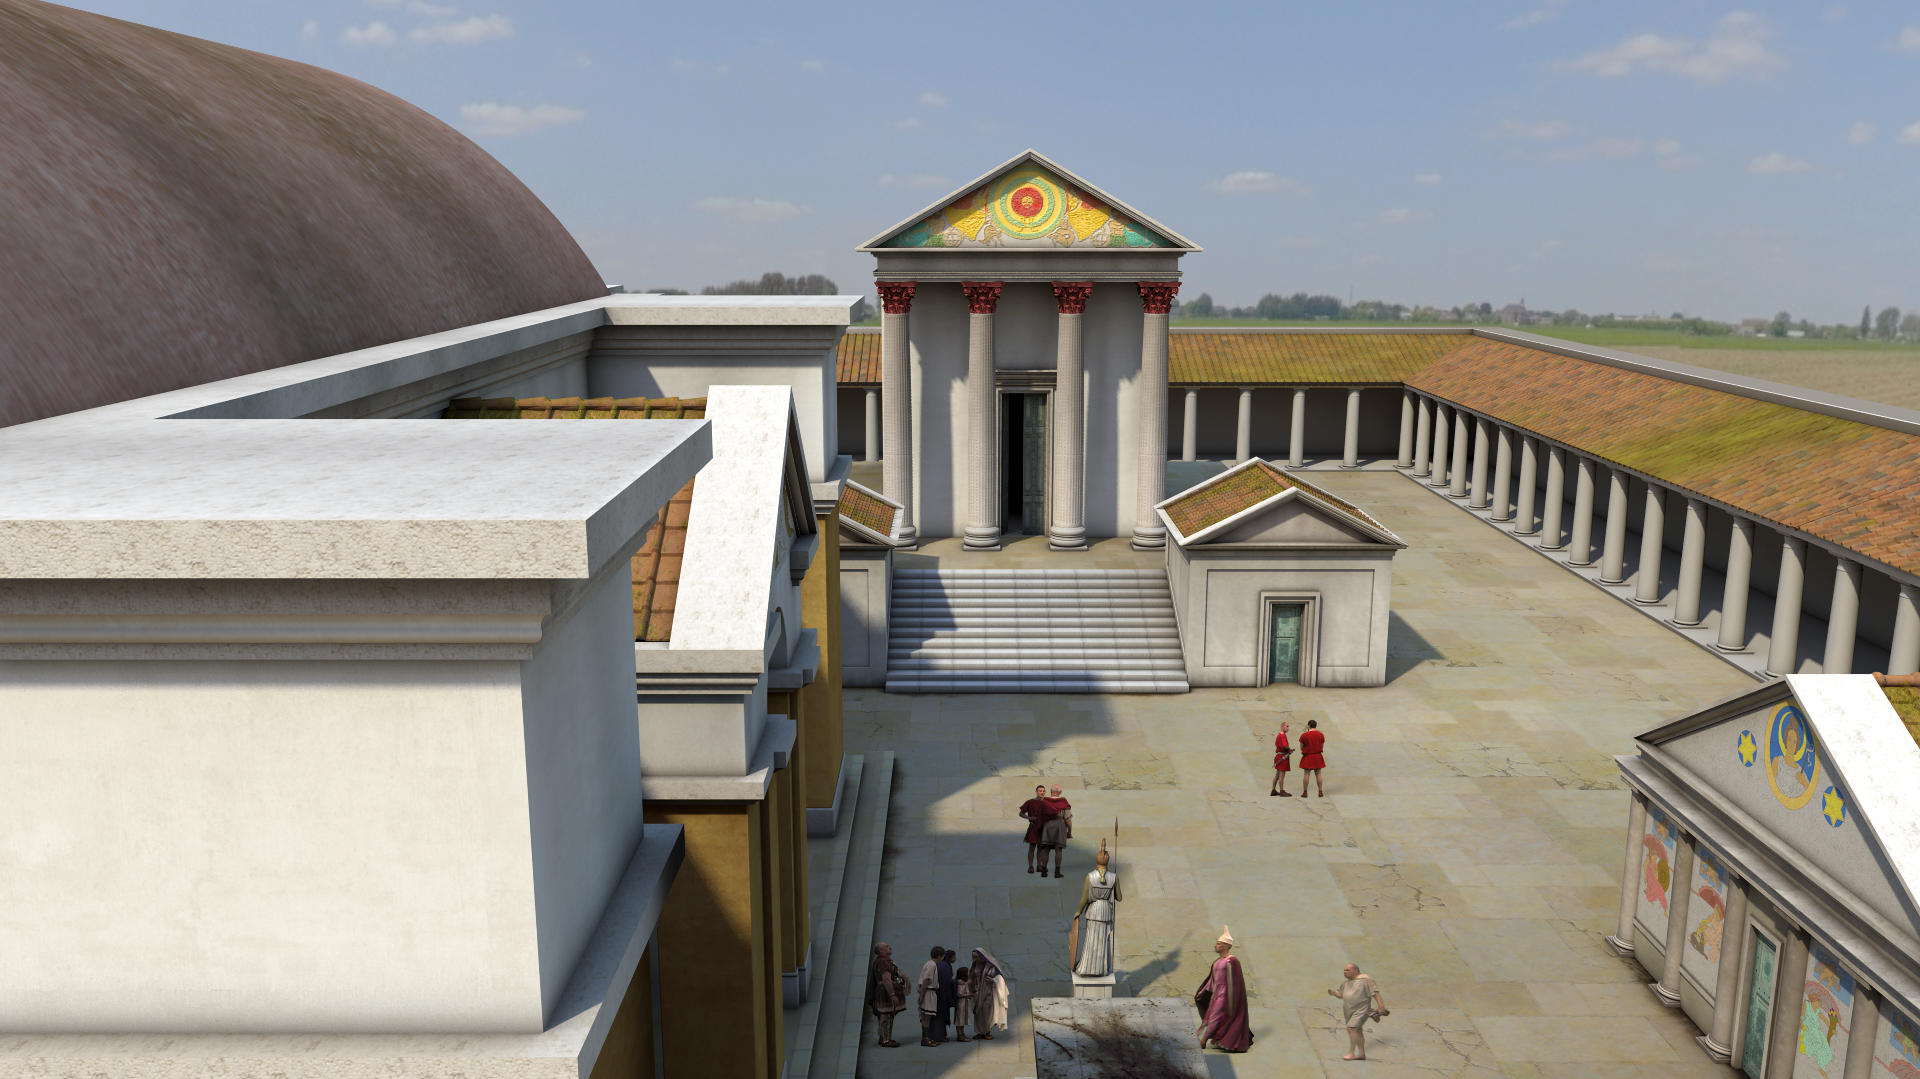 Image: Animation of Temple Courtyard